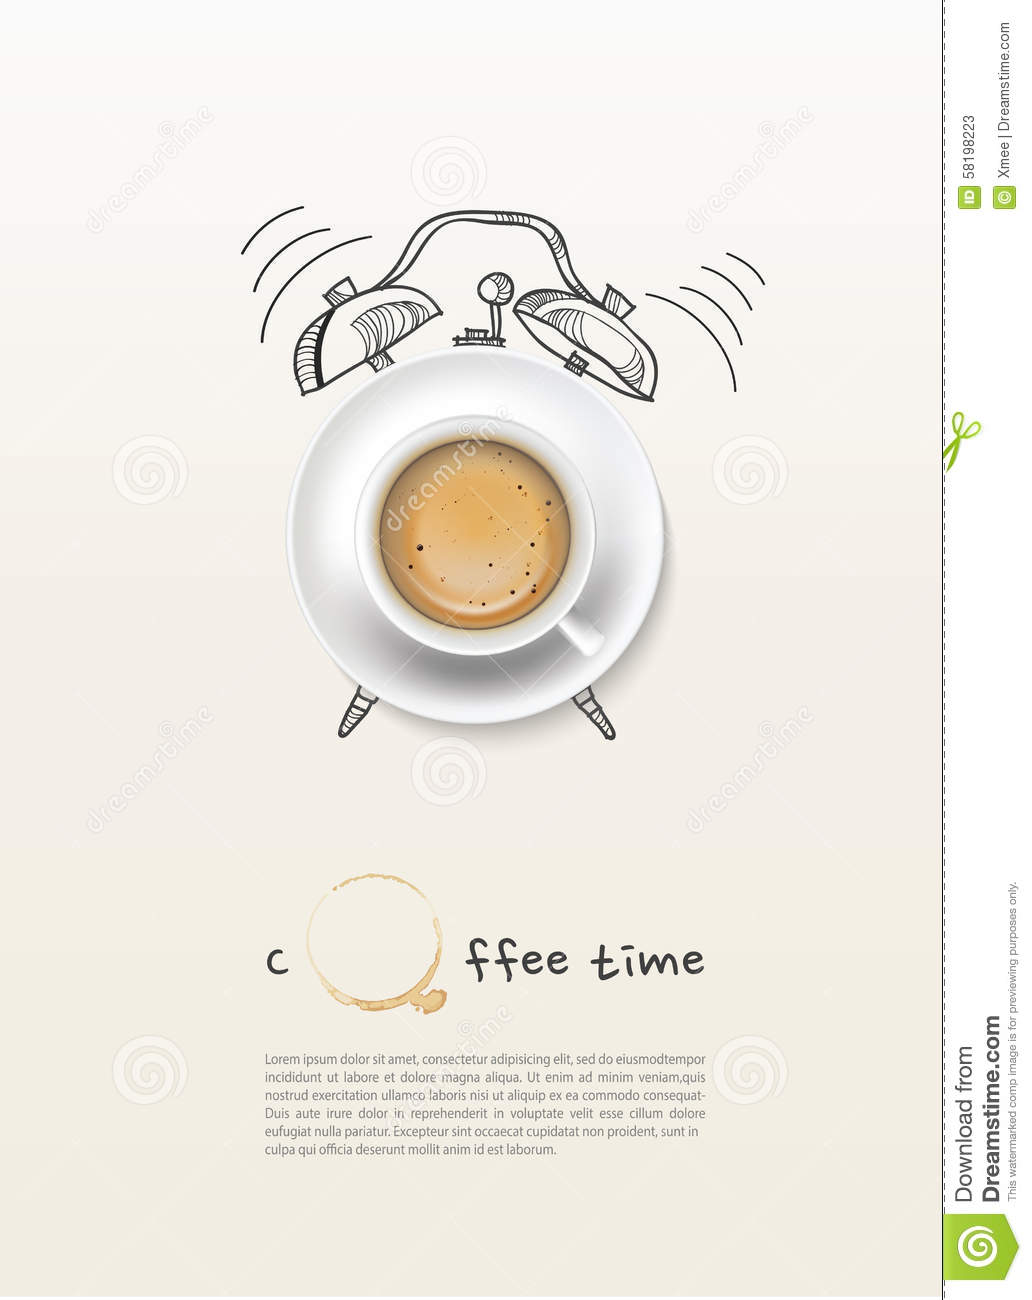 Coffee cup time clock concept design background.